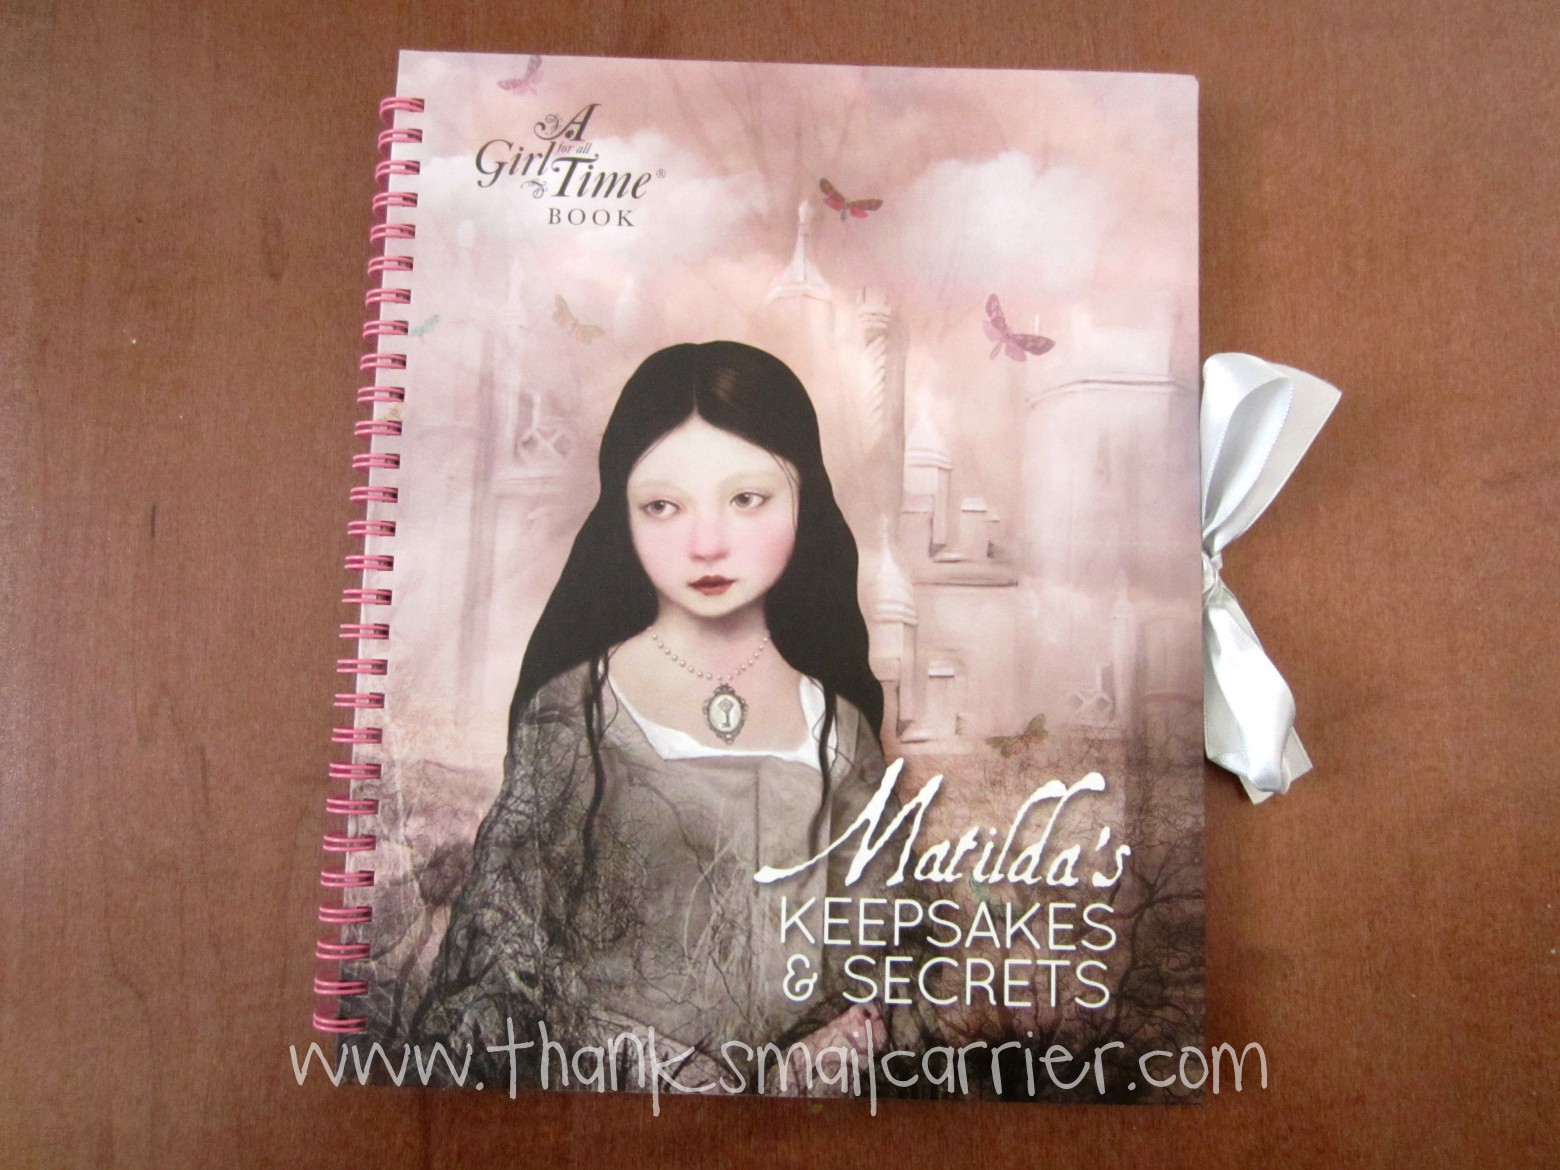 Matilda's Keepsakes and Secrets book